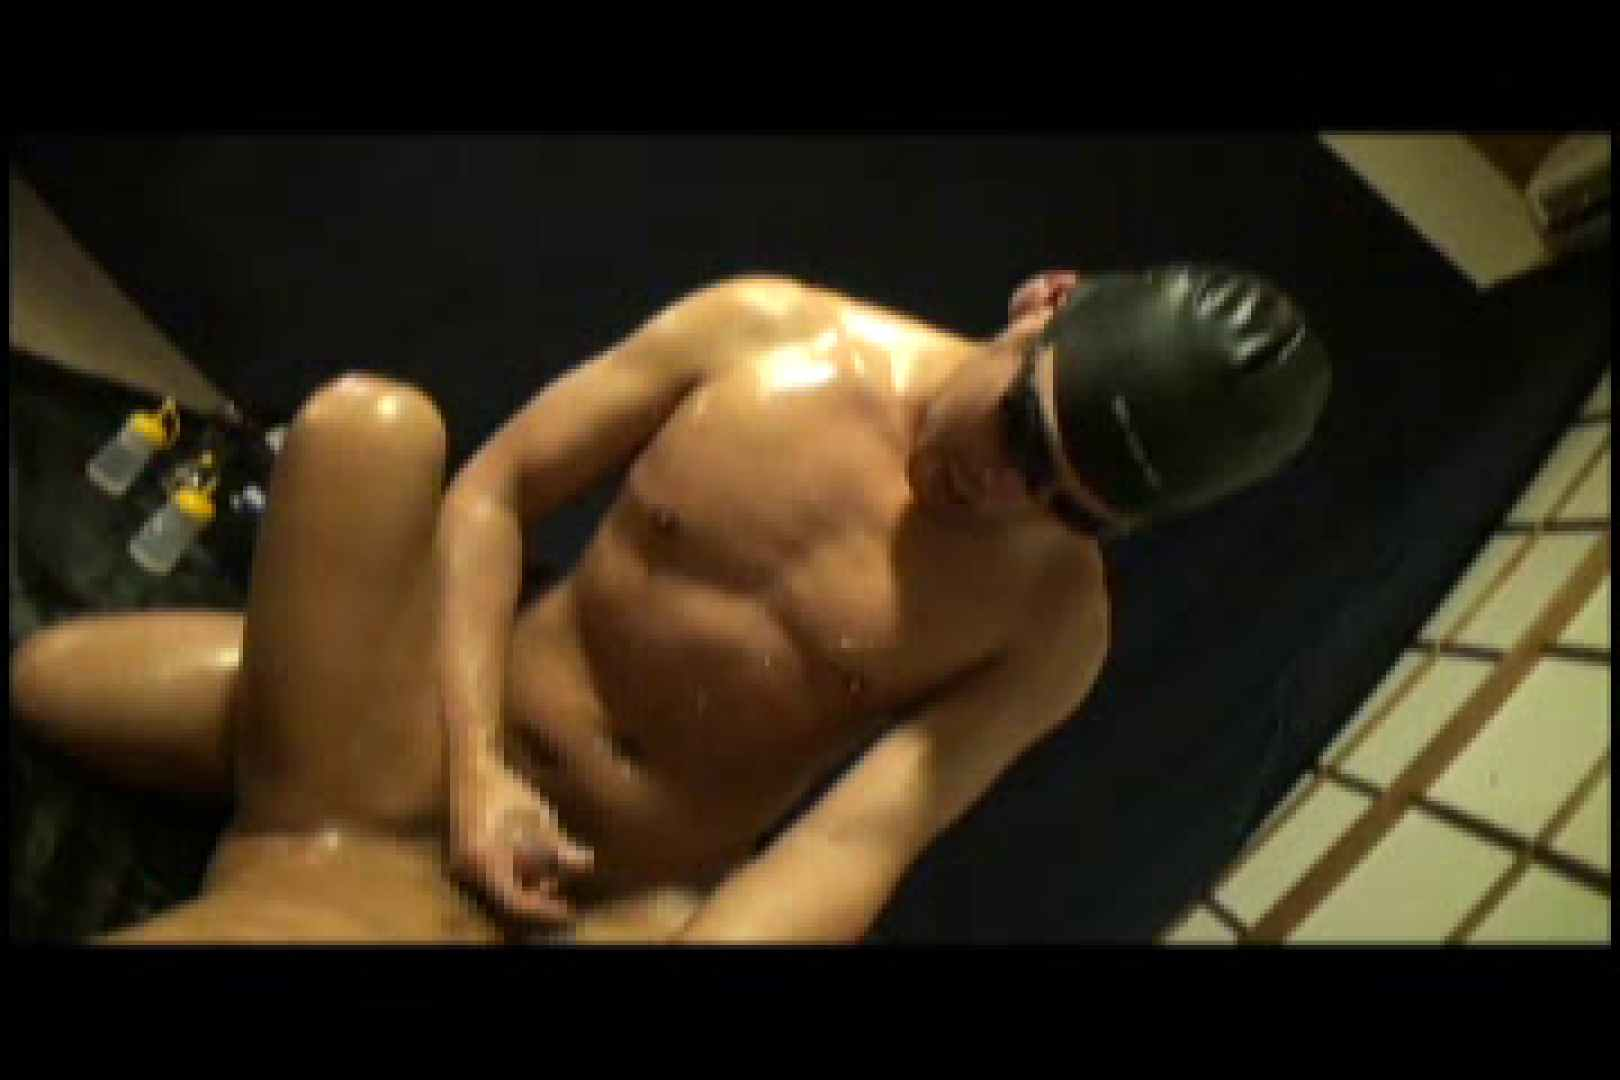 Muscle Goggles fuck!!vol.06 スポーツ系な男たち ゲイエロビデオ画像 85連発 75